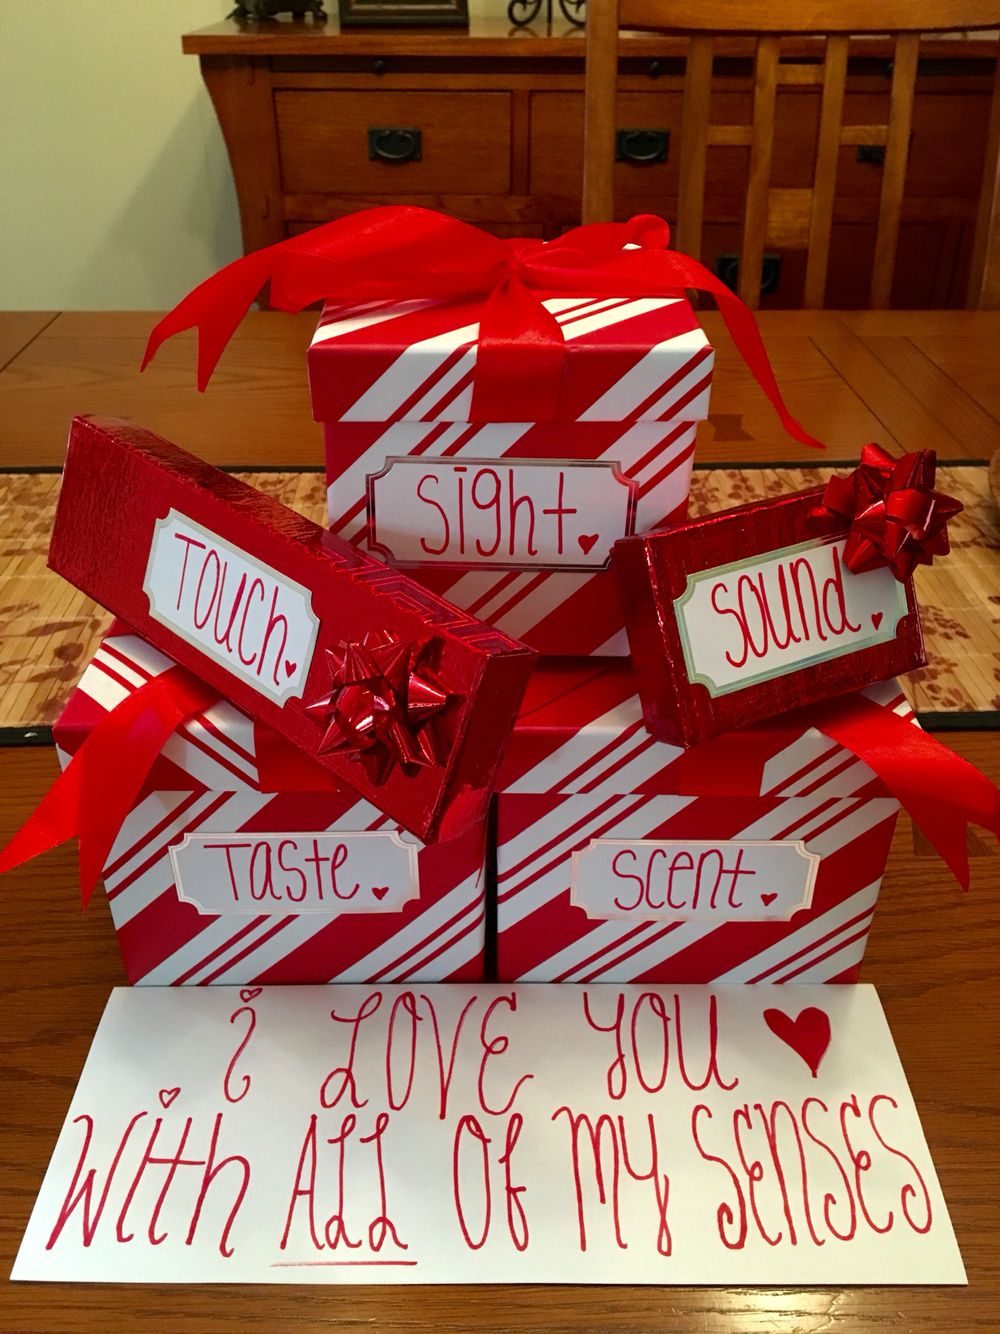 Gift Idea For Him Used The 5 Senses To Incorporate 5 Gifts For Valentine S D Diy Gifts For Him Christmas Gifts For Him Valentines Day Gifts For Him Boyfriends